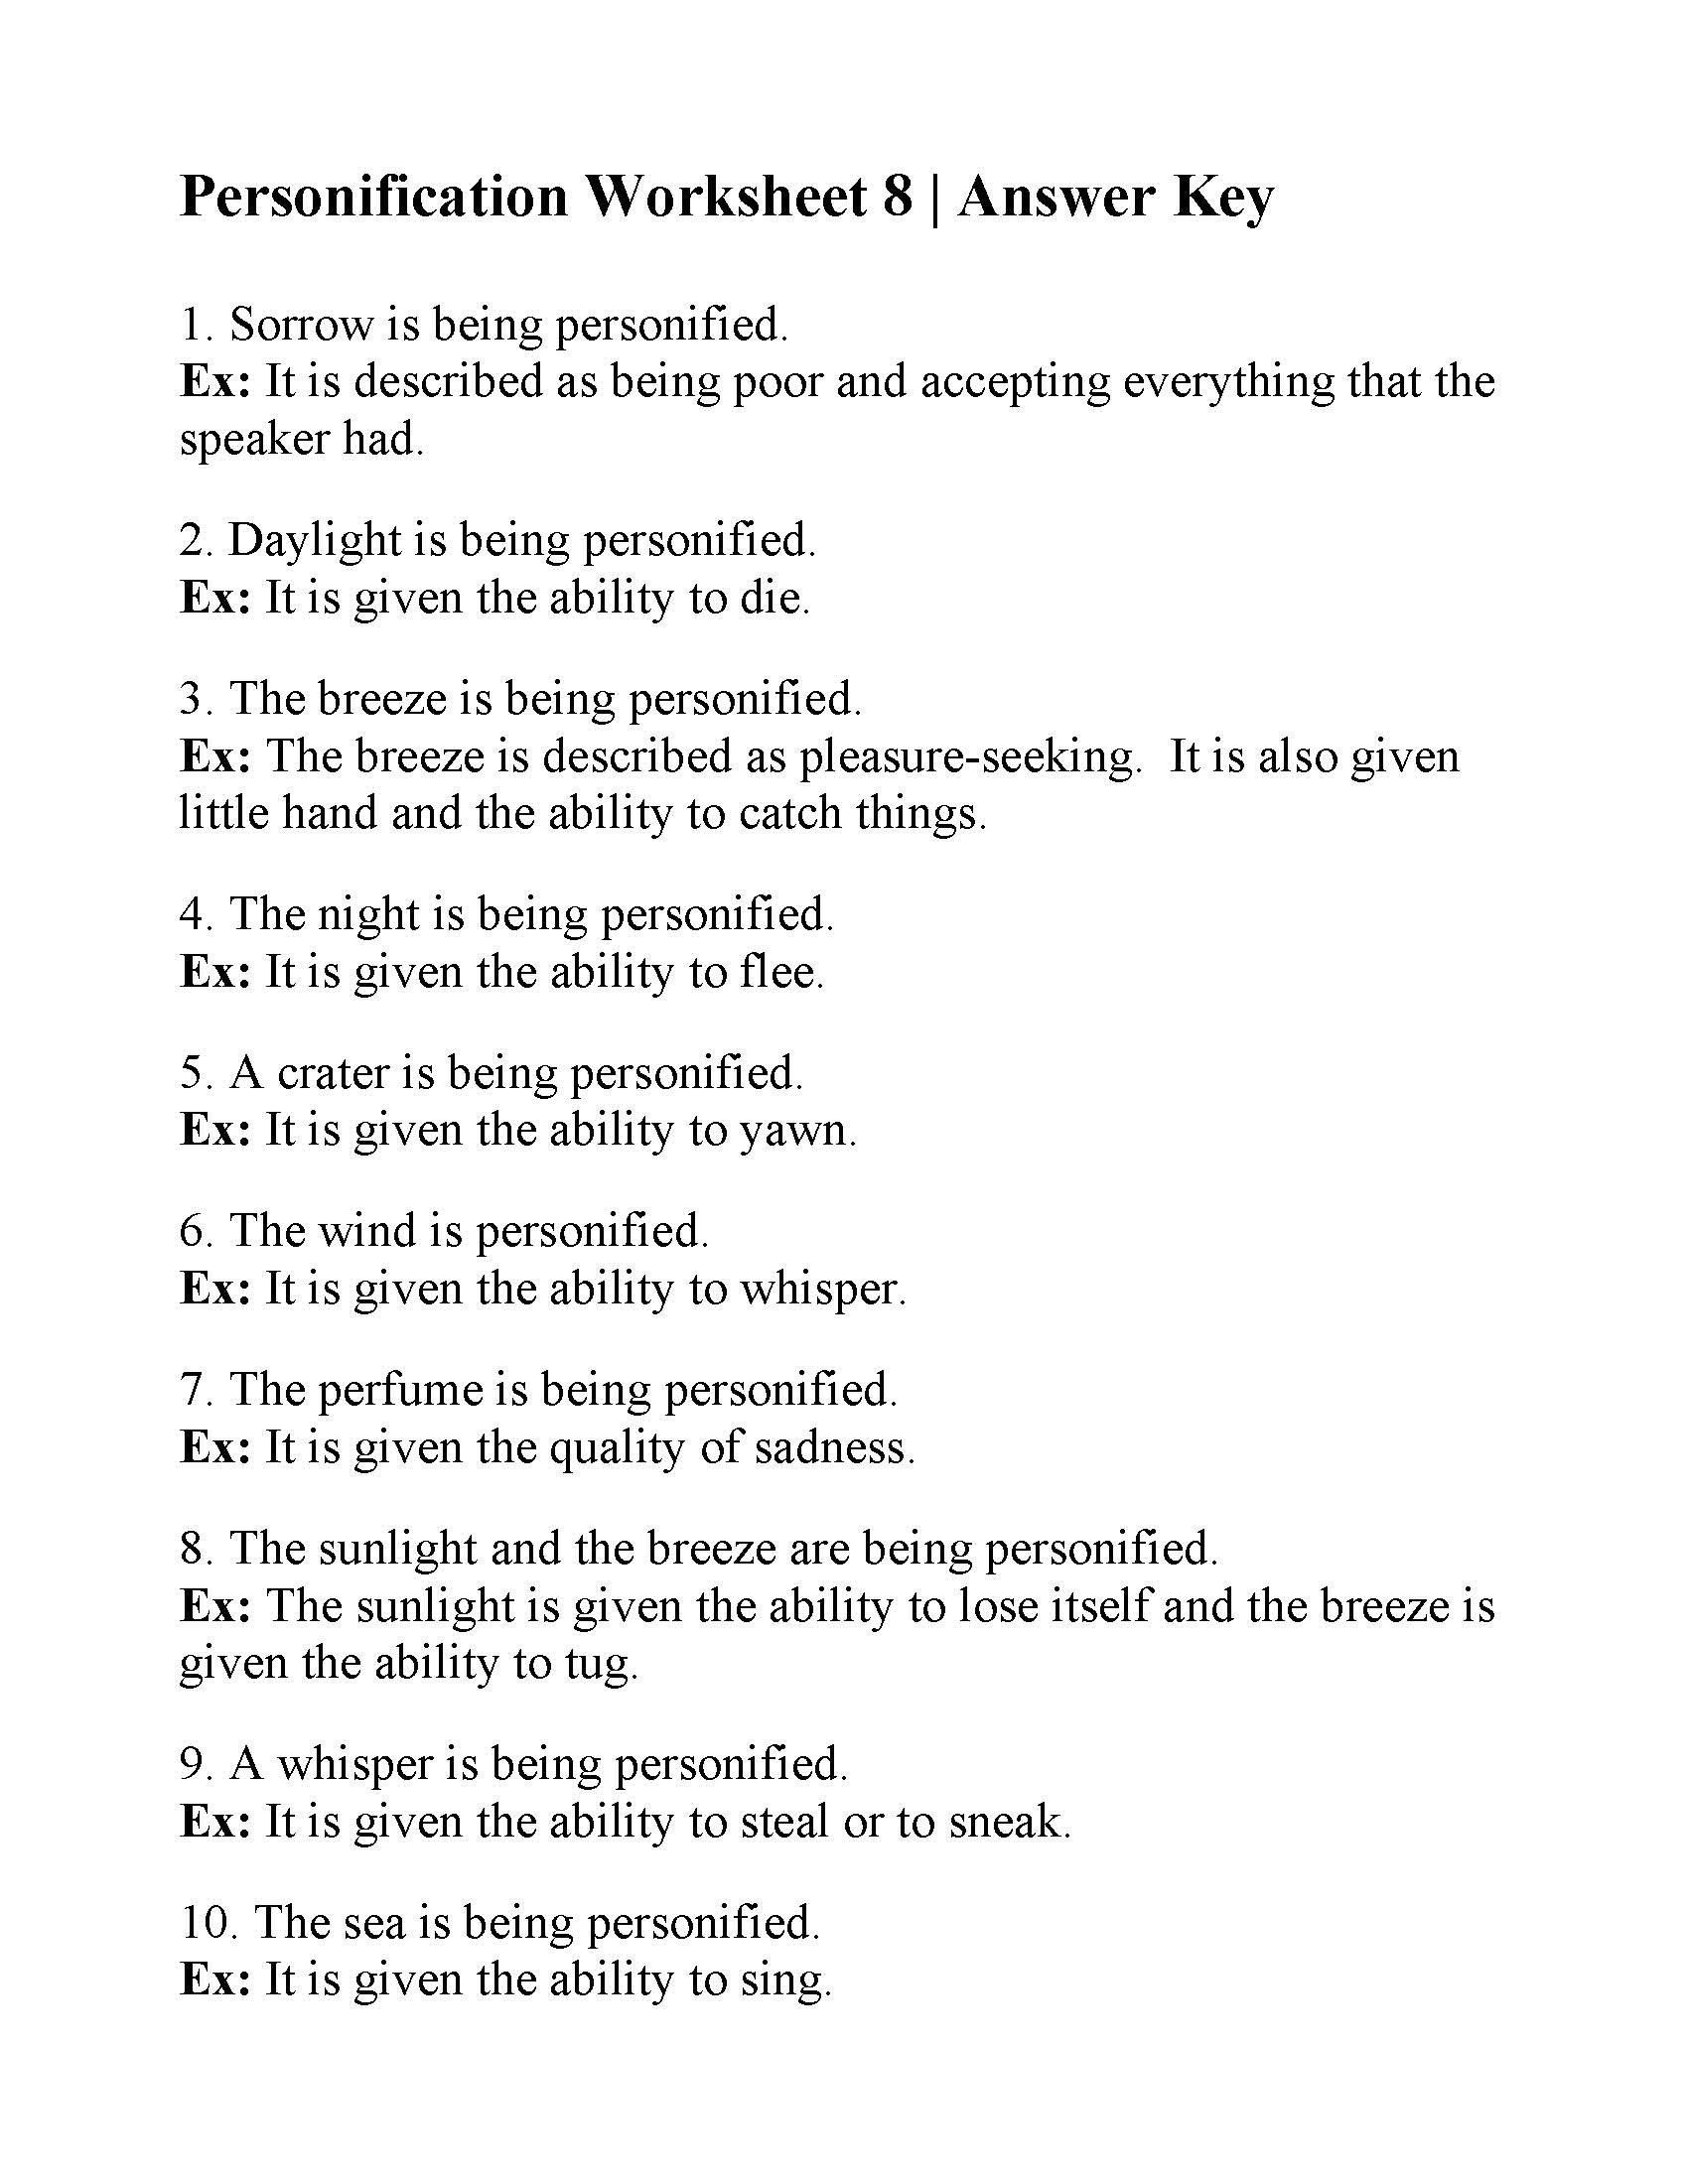 Personification Worksheets 4th Grade Personification Worksheet Answers Worksheets Math Kumon In 2020 Personification Reading Practice Worksheets Worksheets